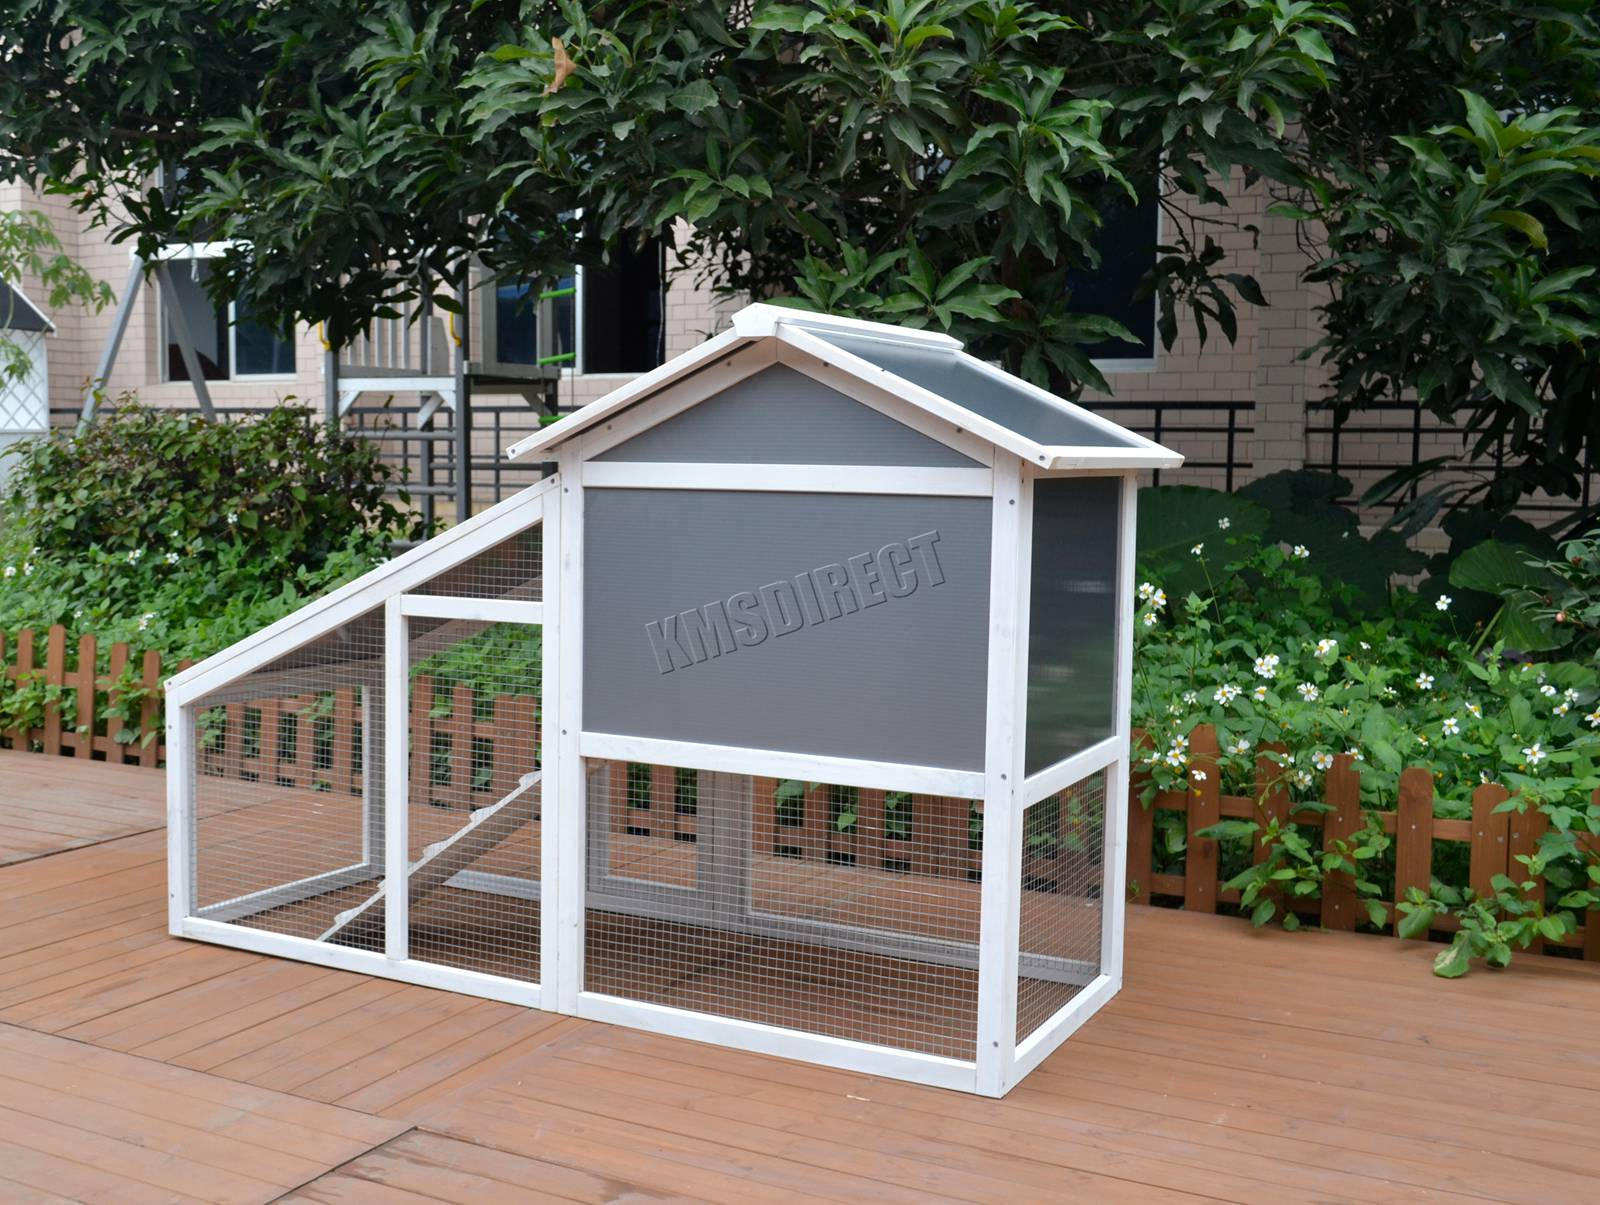 Details about WestWood Wooden Pet Hutch Rabbit Bunny Chicken Coop Shelter  House Run Grey White